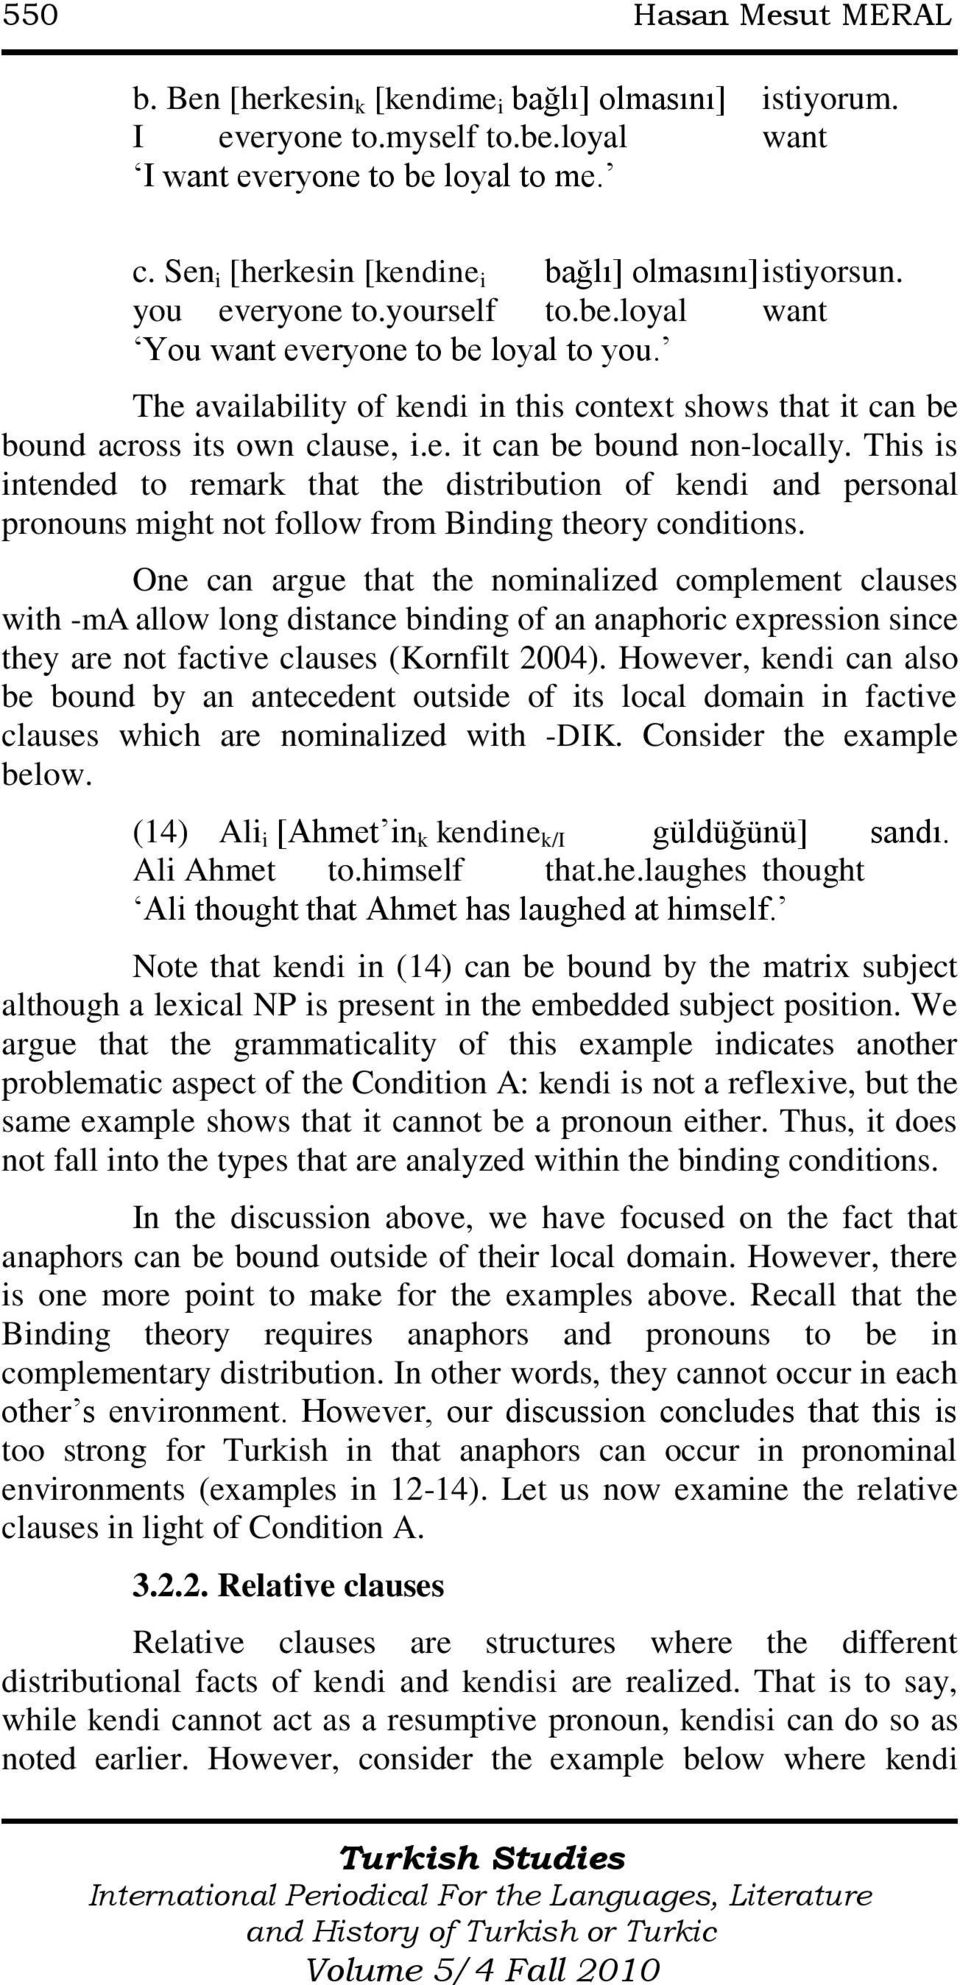 The availability of kendi in this context shows that it can be bound across its own clause, i.e. it can be bound non-locally.